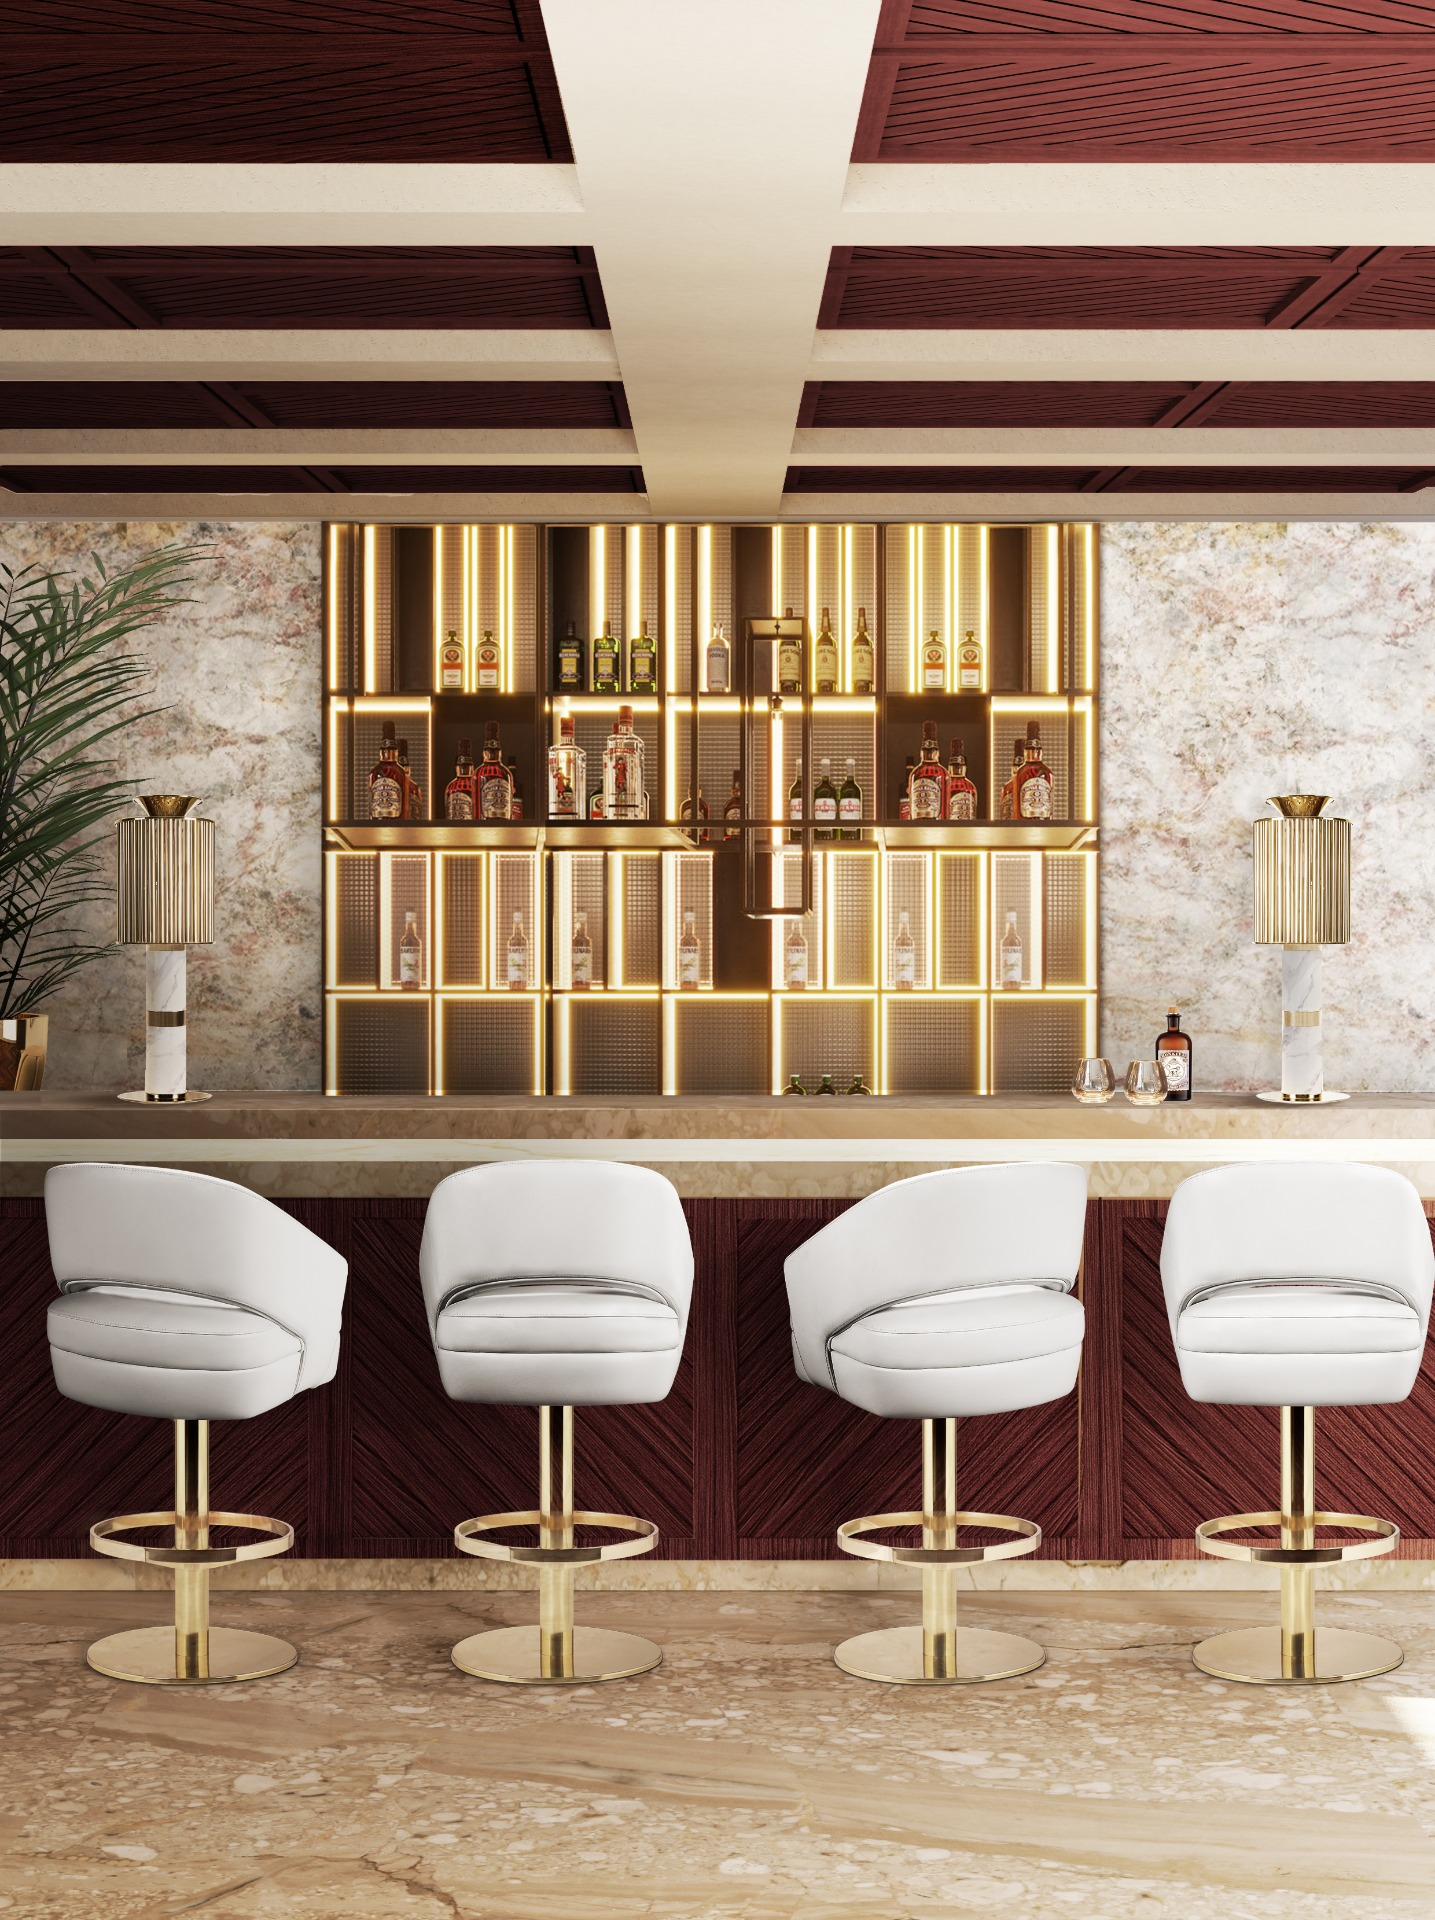 It's Time To Upgadre Your Modern Bar Decor 3 modern bar decor It's Time To Upgadre Your Modern Bar Decor Its Time To Upgadre Your Modern Bar Decor 3